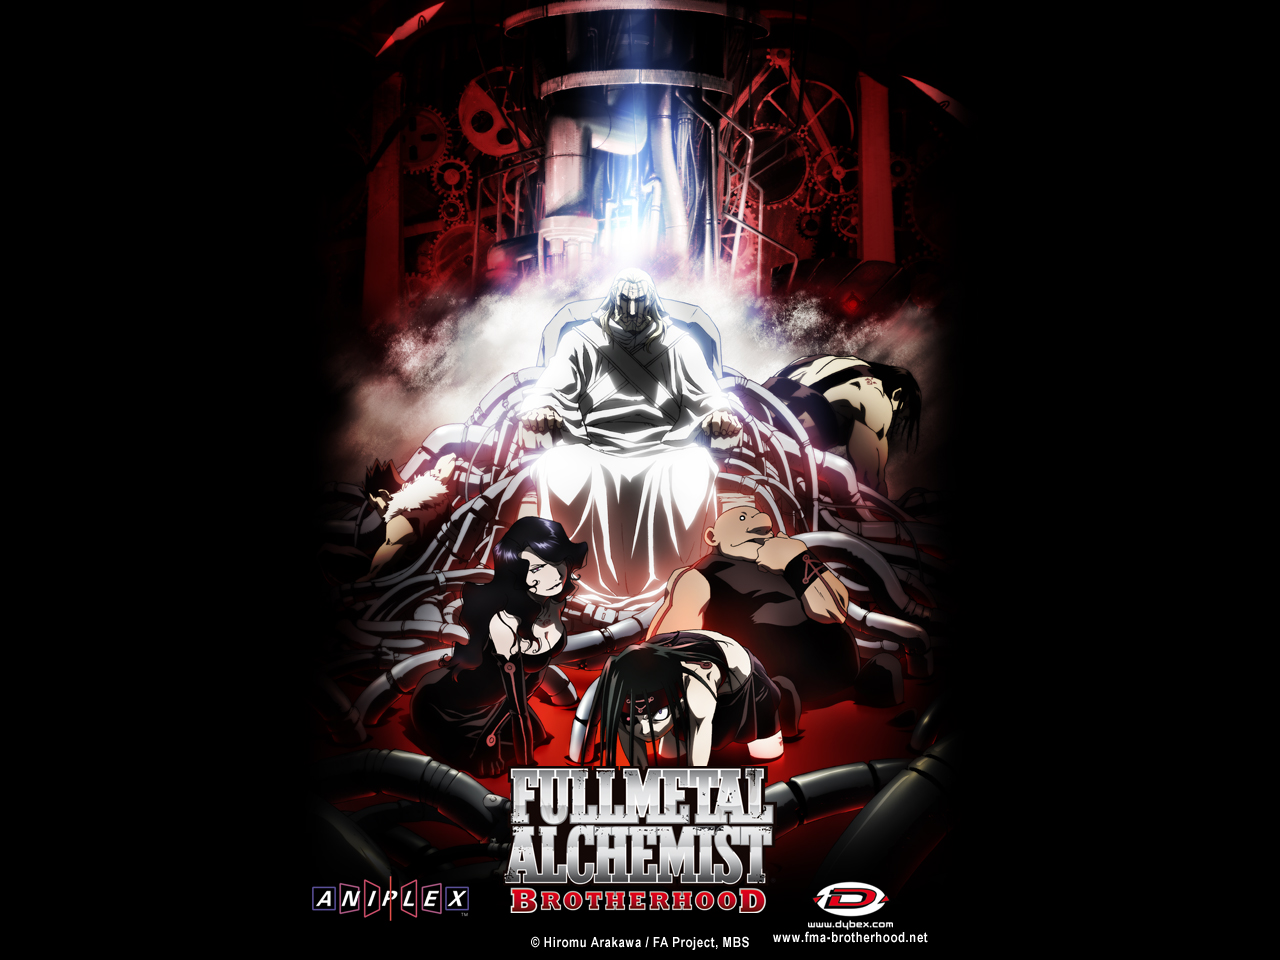 Fullmetal alchemist brotherhood 65 wide wallpaper animewp fullmetal alchemist brotherhood 65 wide wallpaper buycottarizona Choice Image